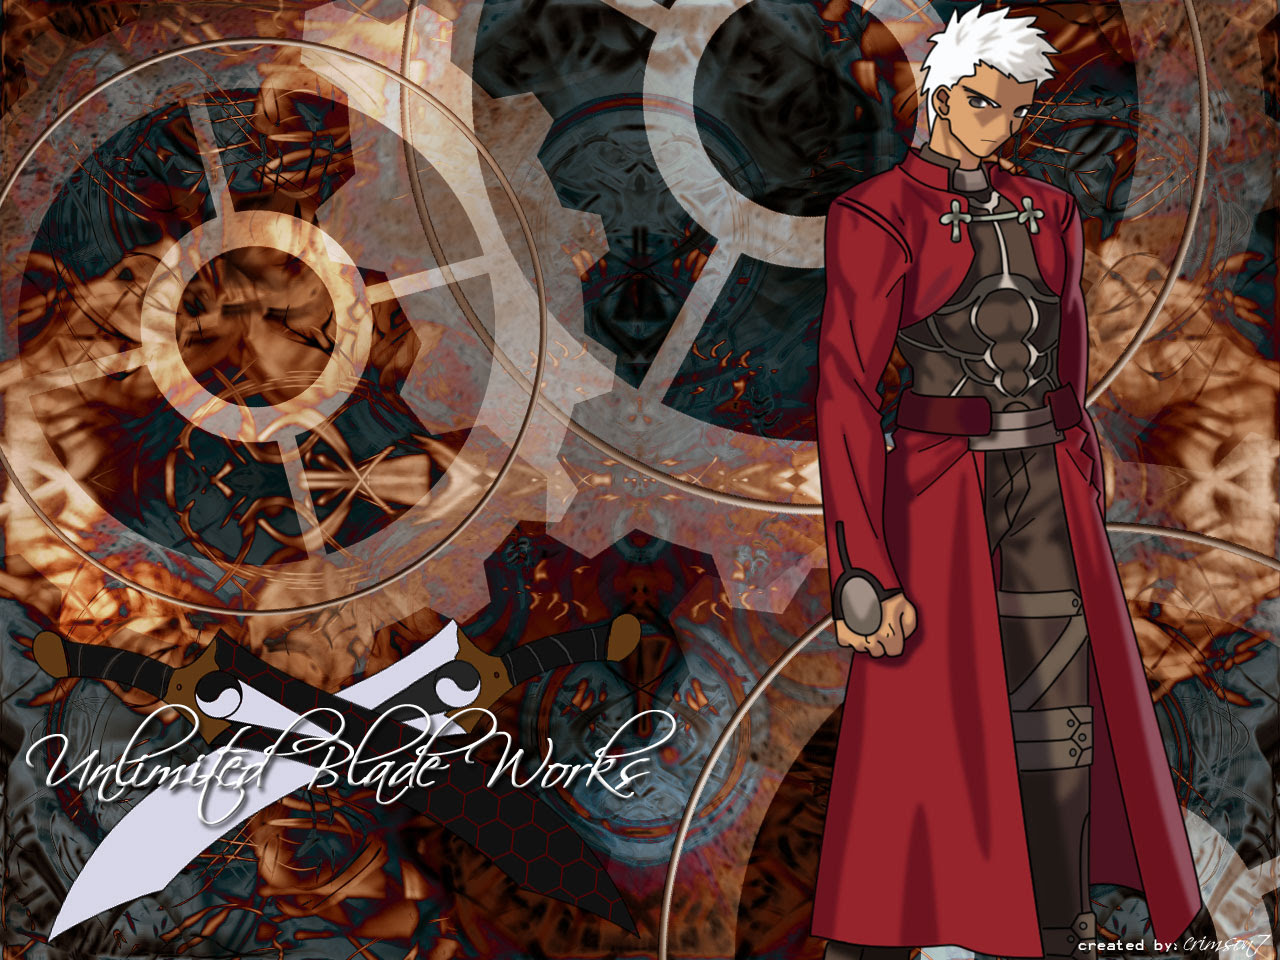 Fate Stay Night Wallpaper Unlimited Blade Works Minitokyo